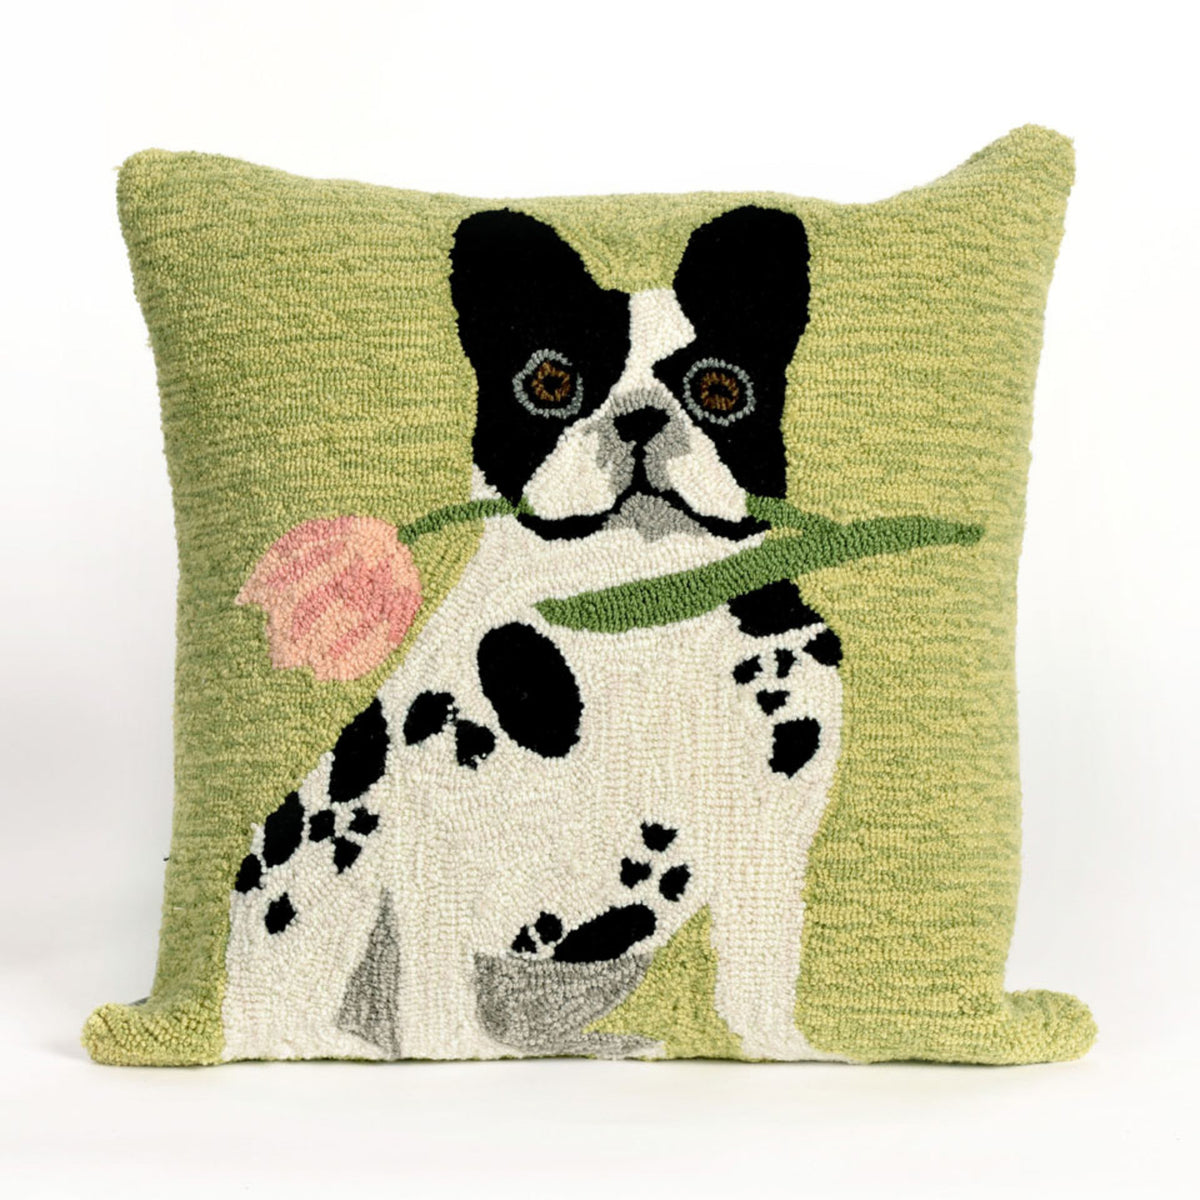 Frontporch Flowery Frenchy Green Pillows